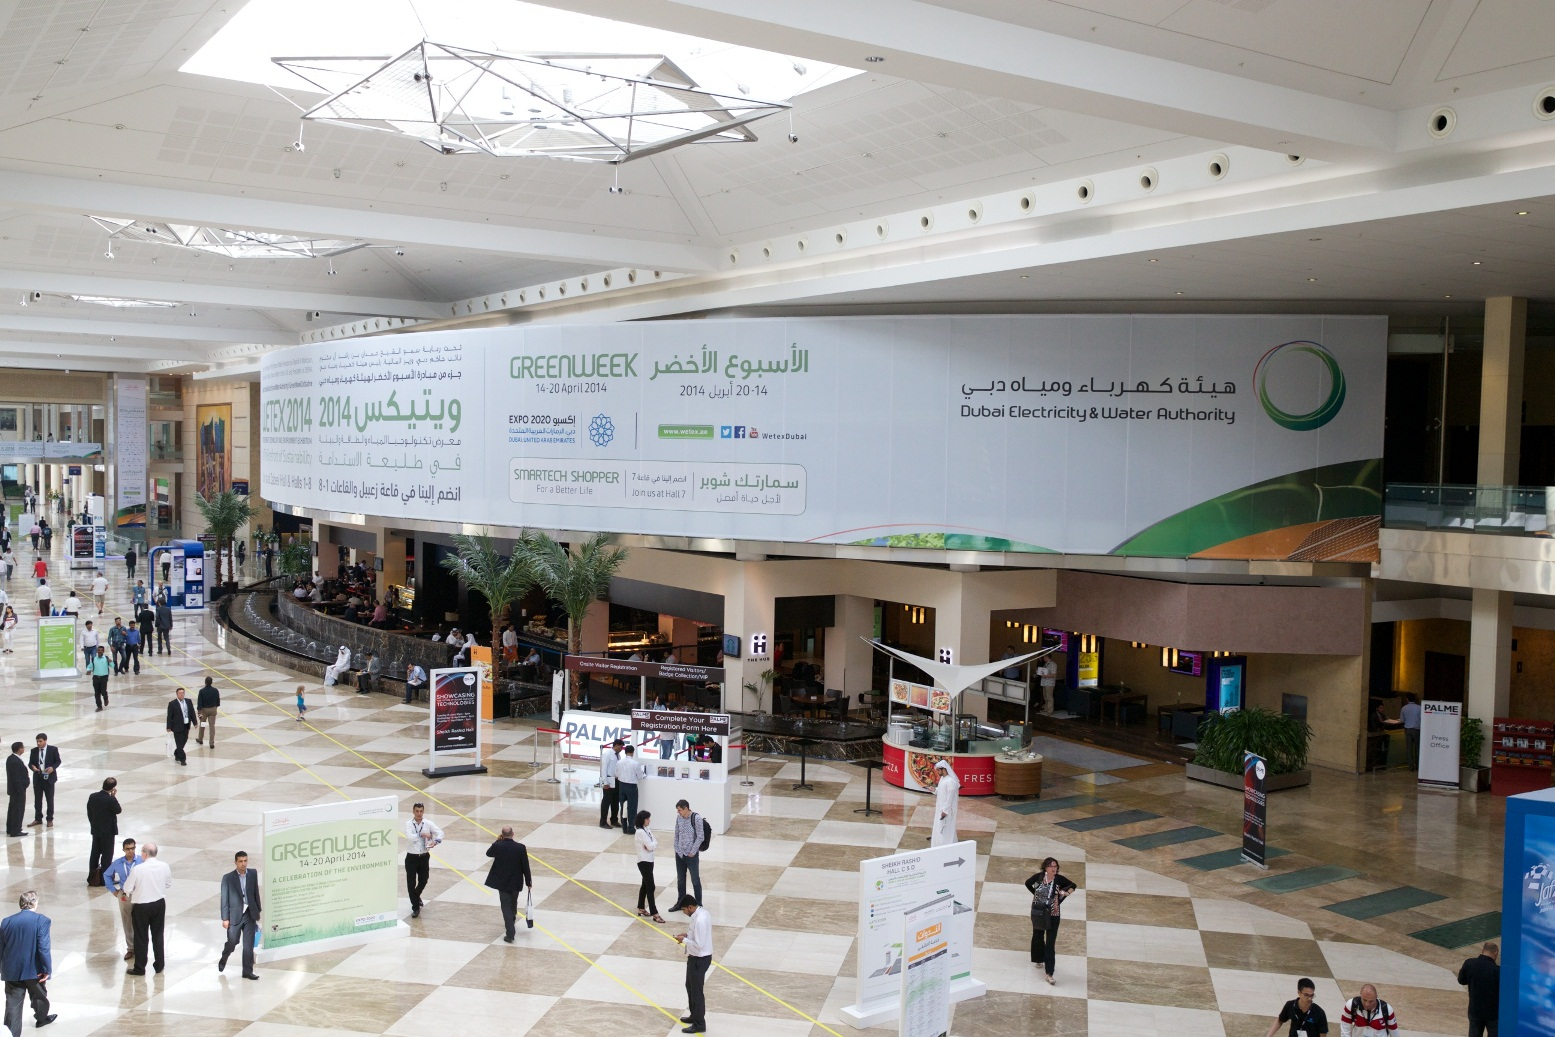 DEWA organises 17th Water, Energy, Technology and Environment Exhibition (WETEX) for April 2015